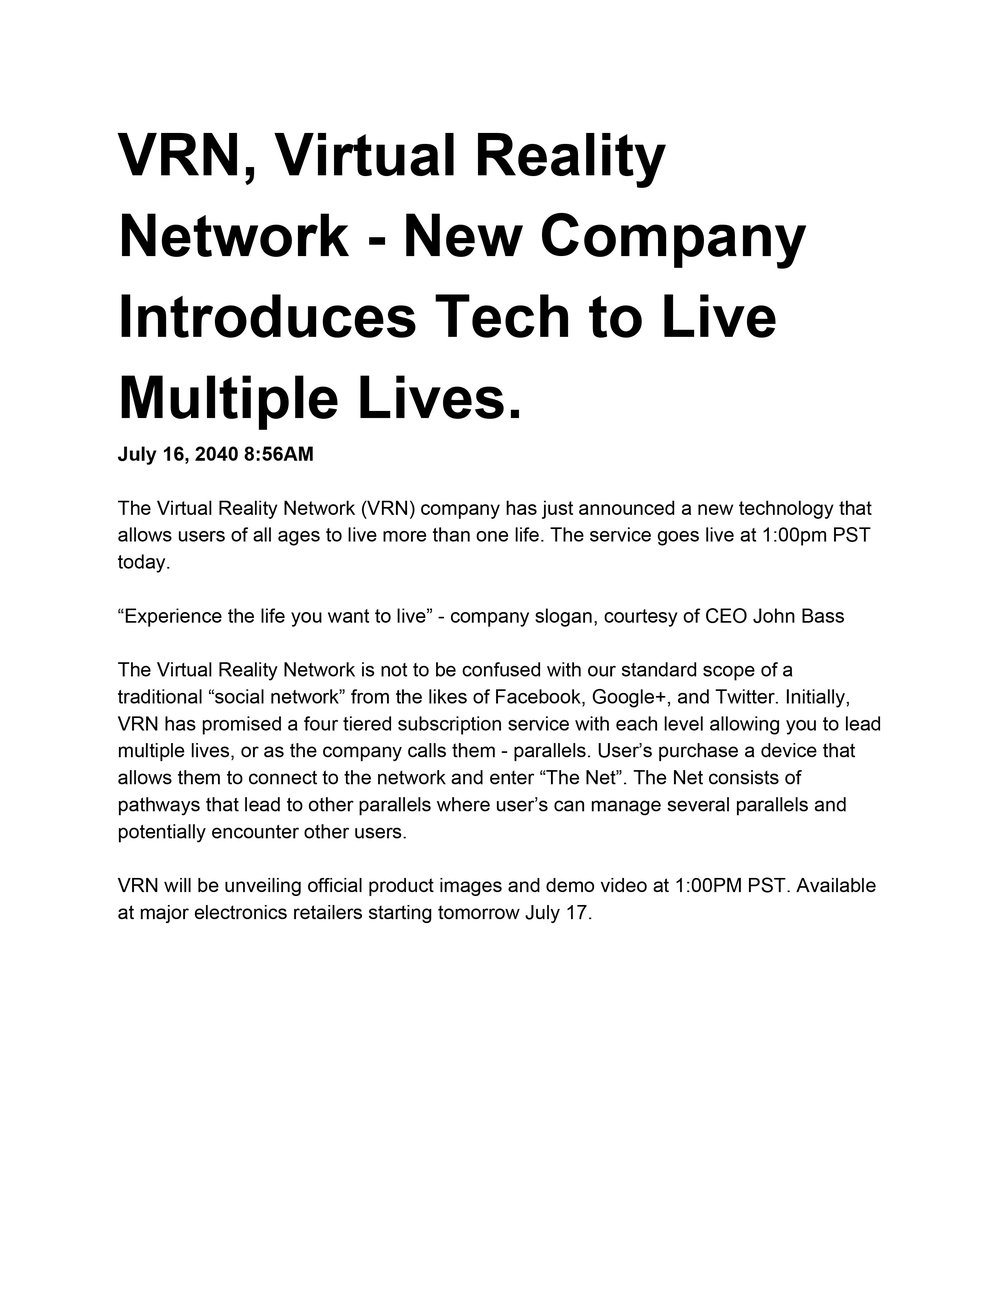 The Virtual Reality Network press release